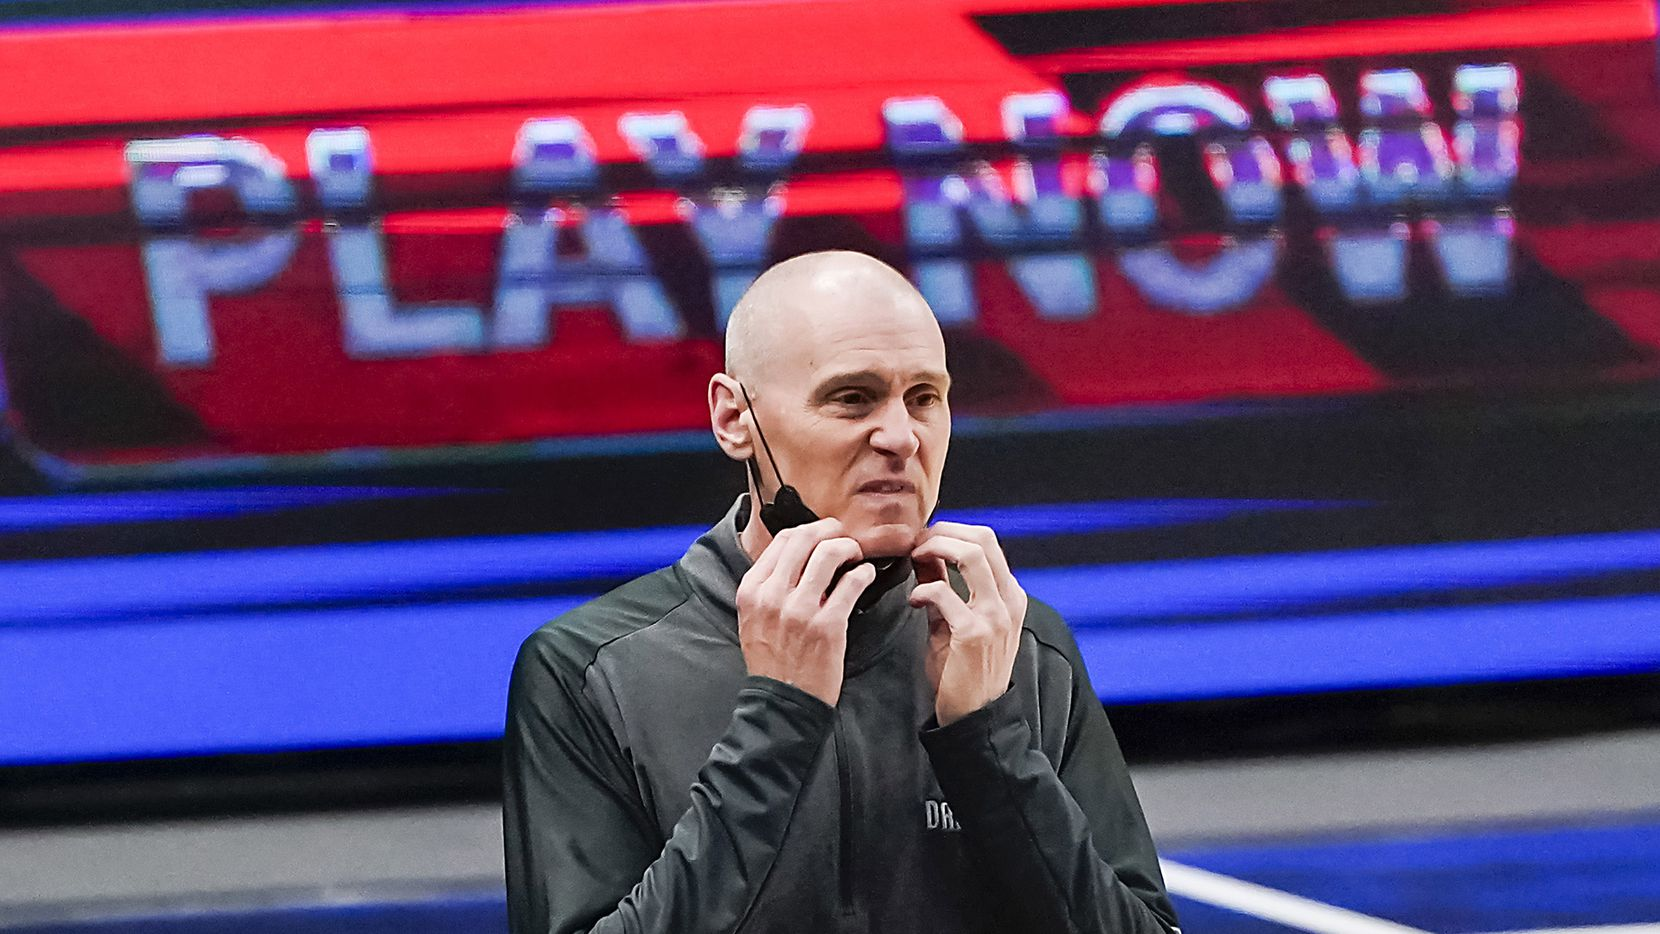 Dallas Mavericks head coach Rick Carlisle watches from the bench during the first quarter of an NBA basketball game against the Los Angeles Clippers at American Airlines Center on Wednesday, March 17, 2021, in Dallas.